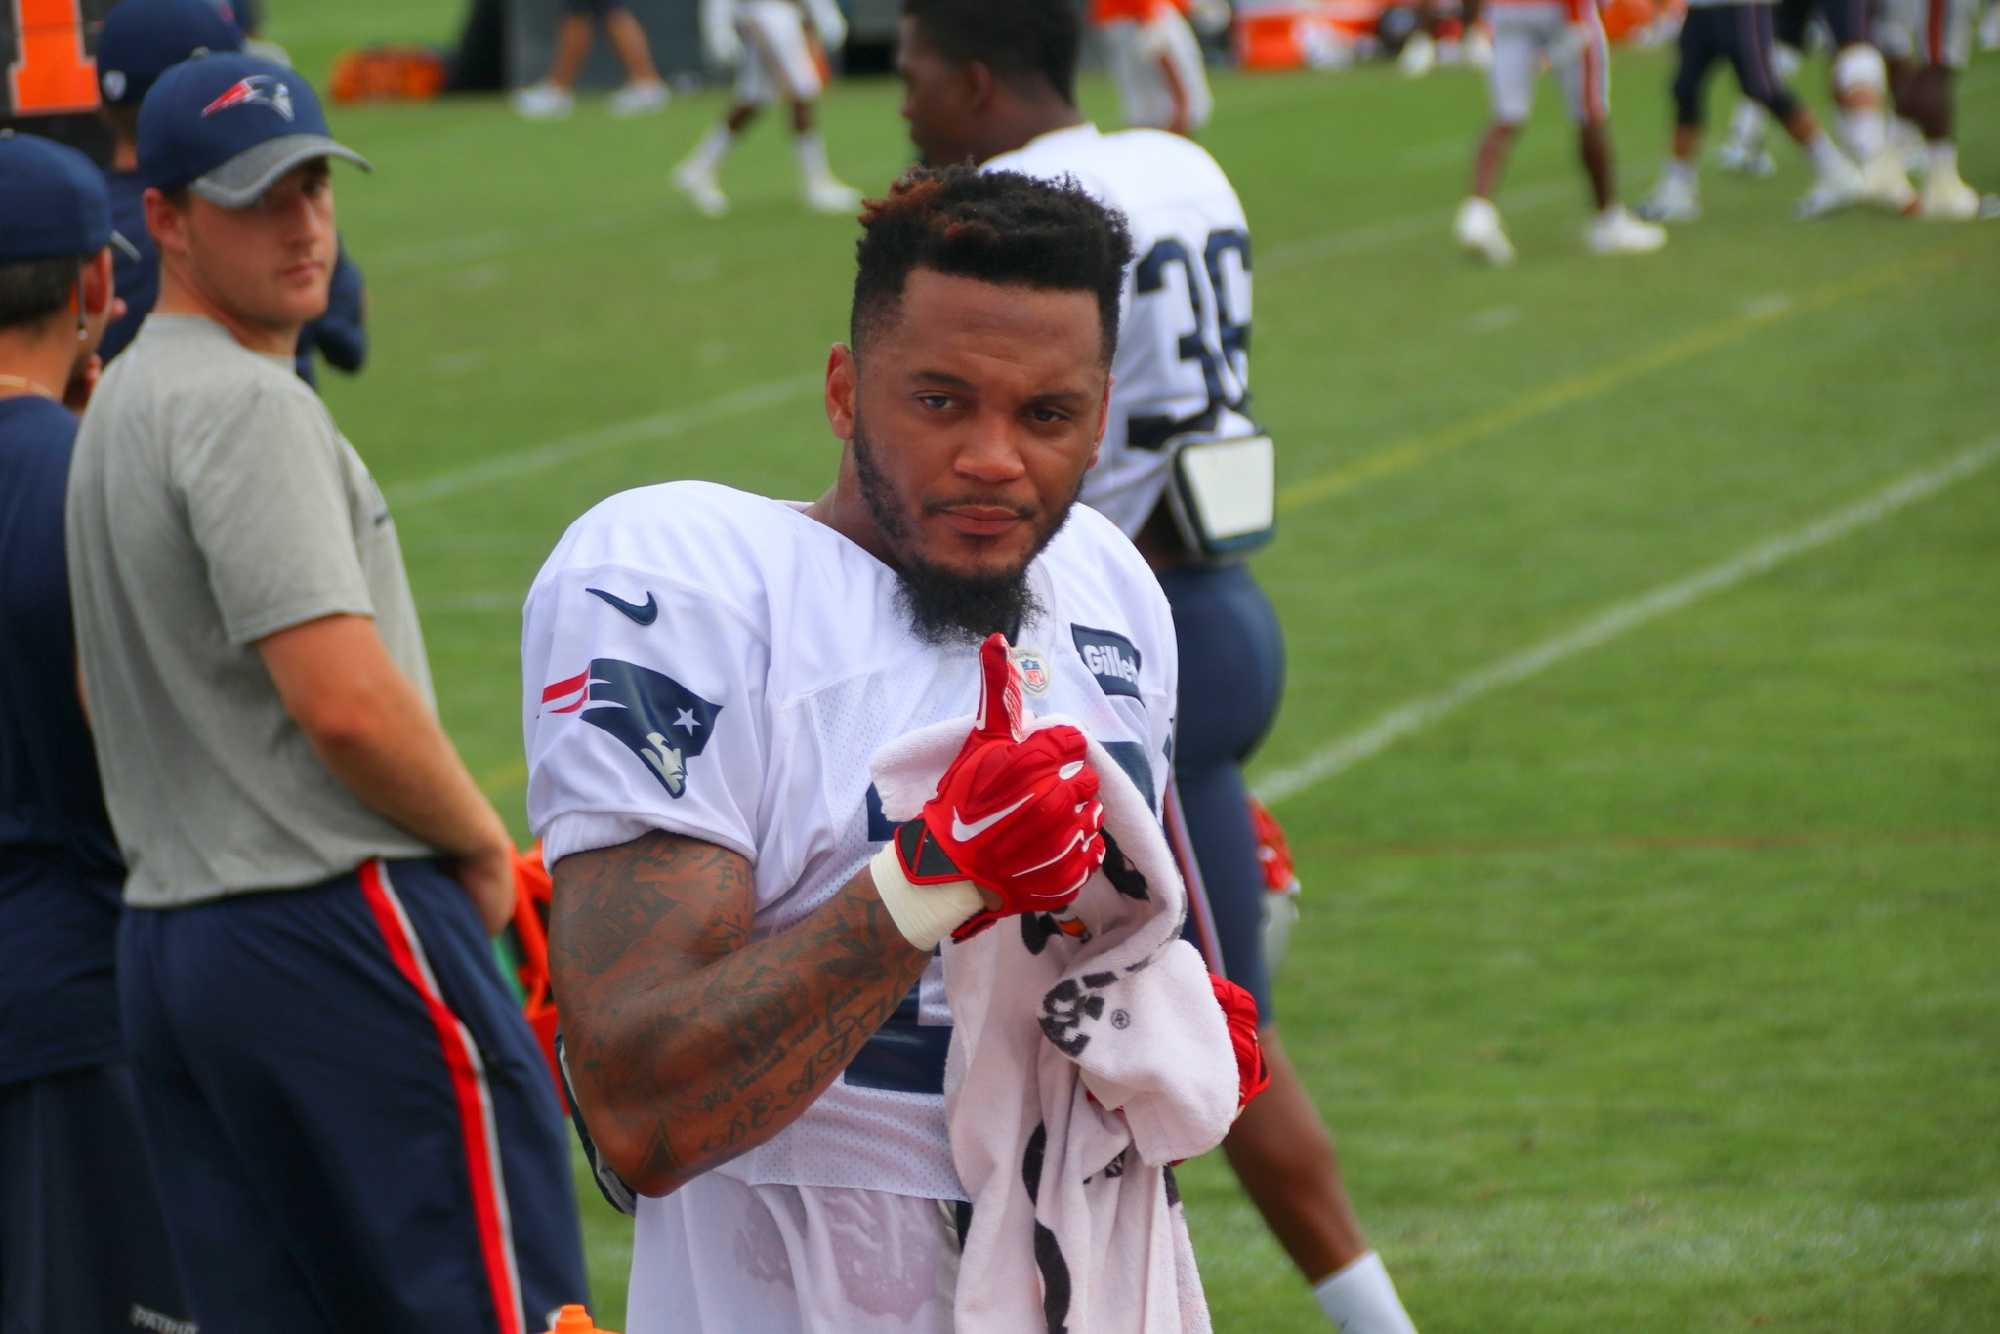 Patriots player fined for taking part in arm wrestling petition